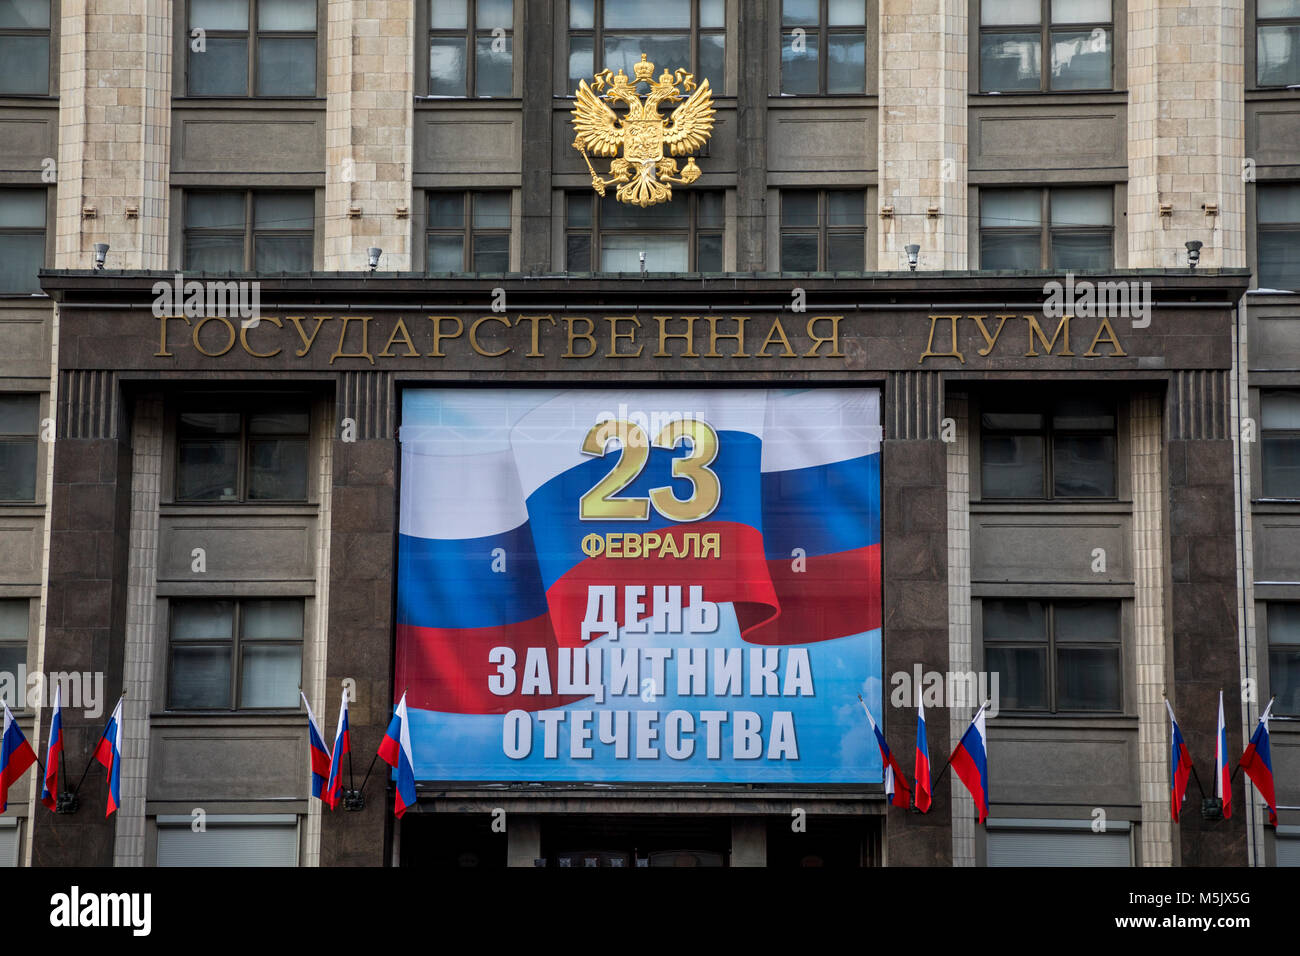 A festive banner for the Fatherland Day is at the facade of the State Duma building in Moscow, Russia - Stock Image